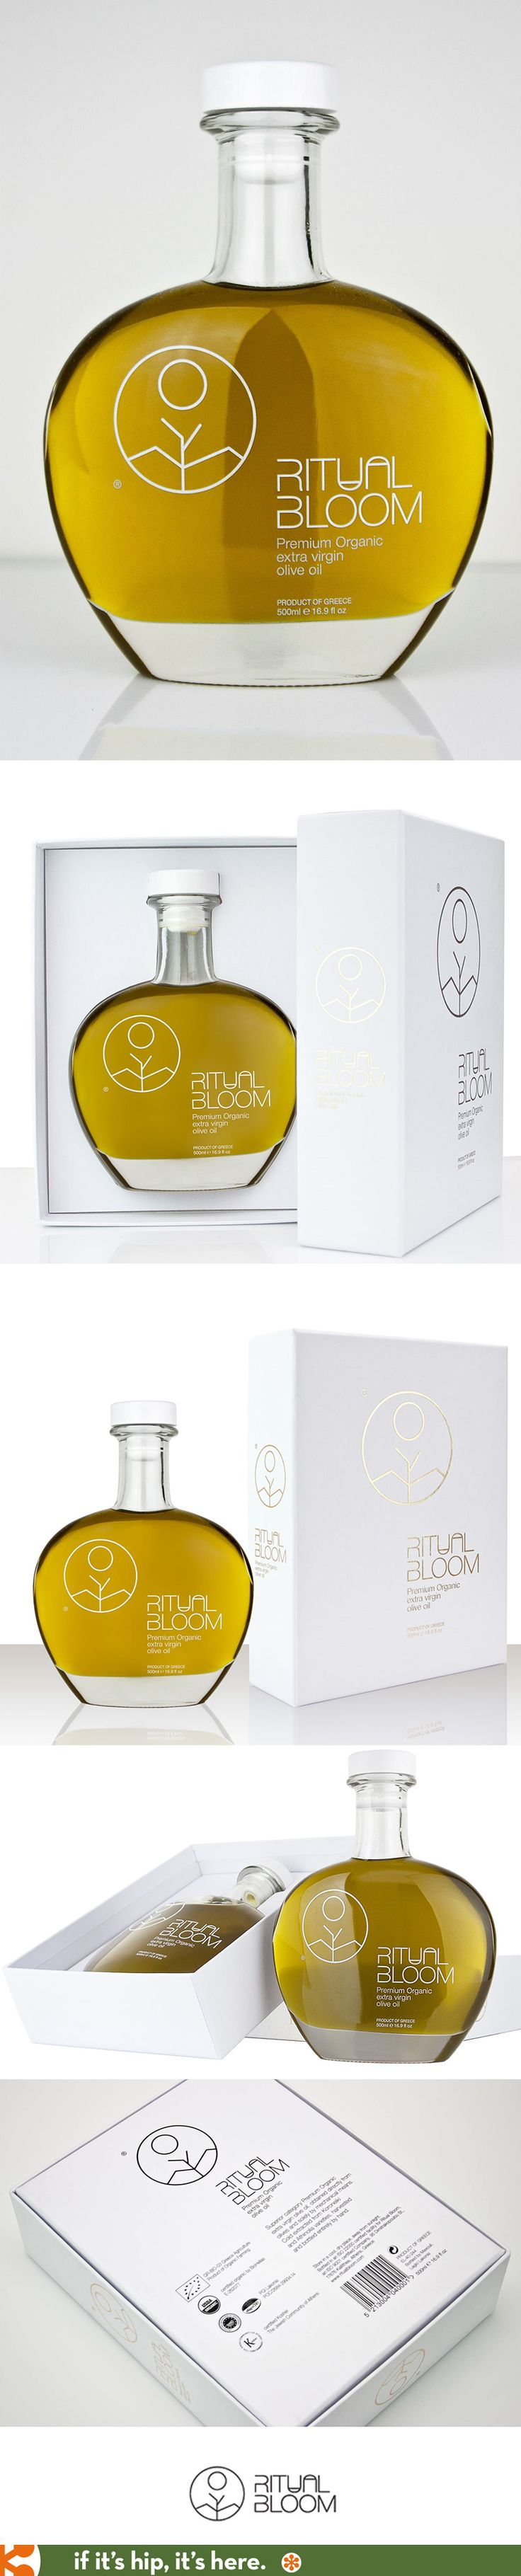 Ritual Bloom's Premium Organic Olive Oil comes in a heart shaped bottle.